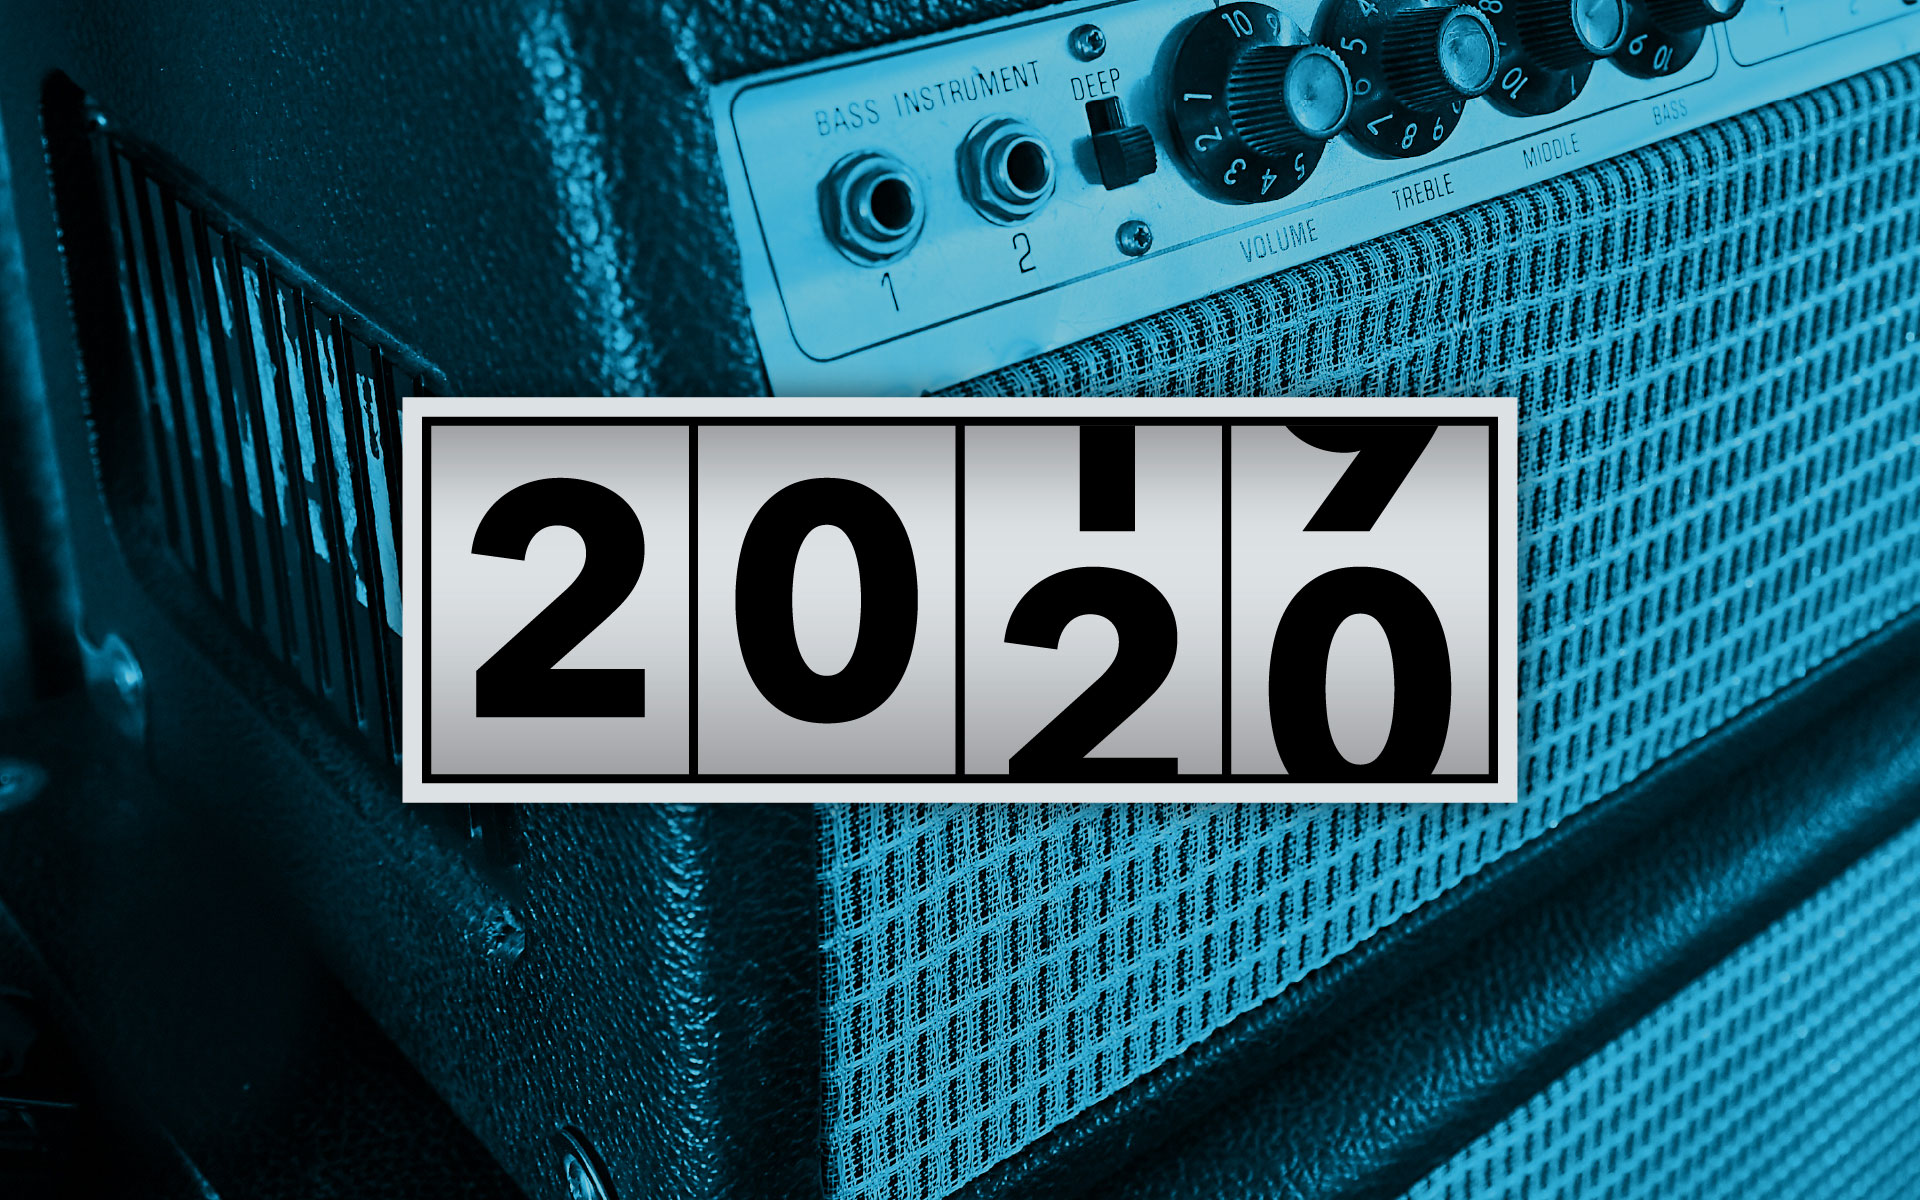 A dial rolling over from 2019 to 2020 with an amp in the background.